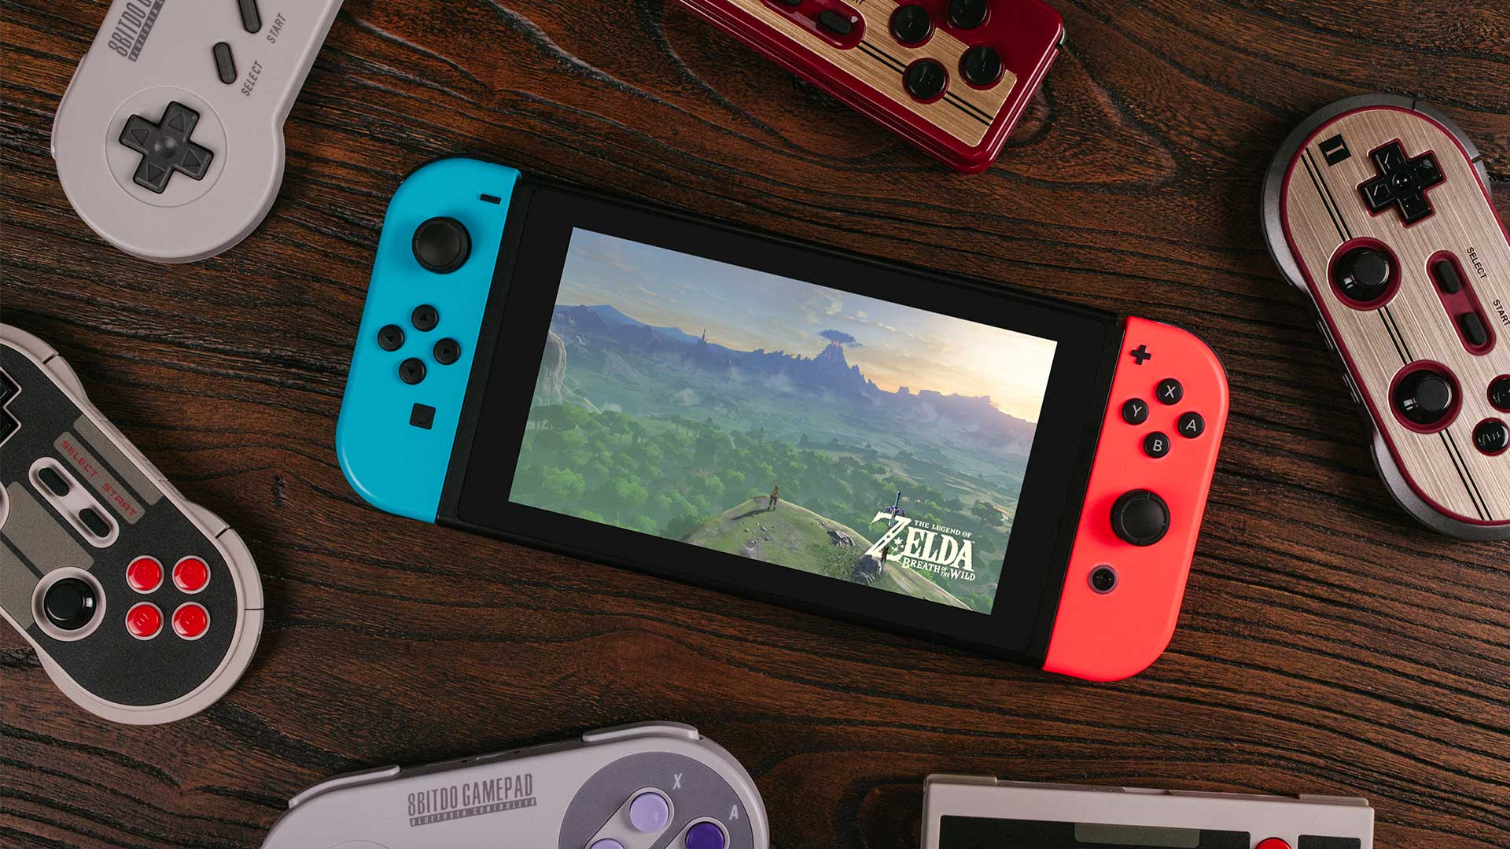 You Can Now Use Retro Controllers on Nintendo Switch | Tom's